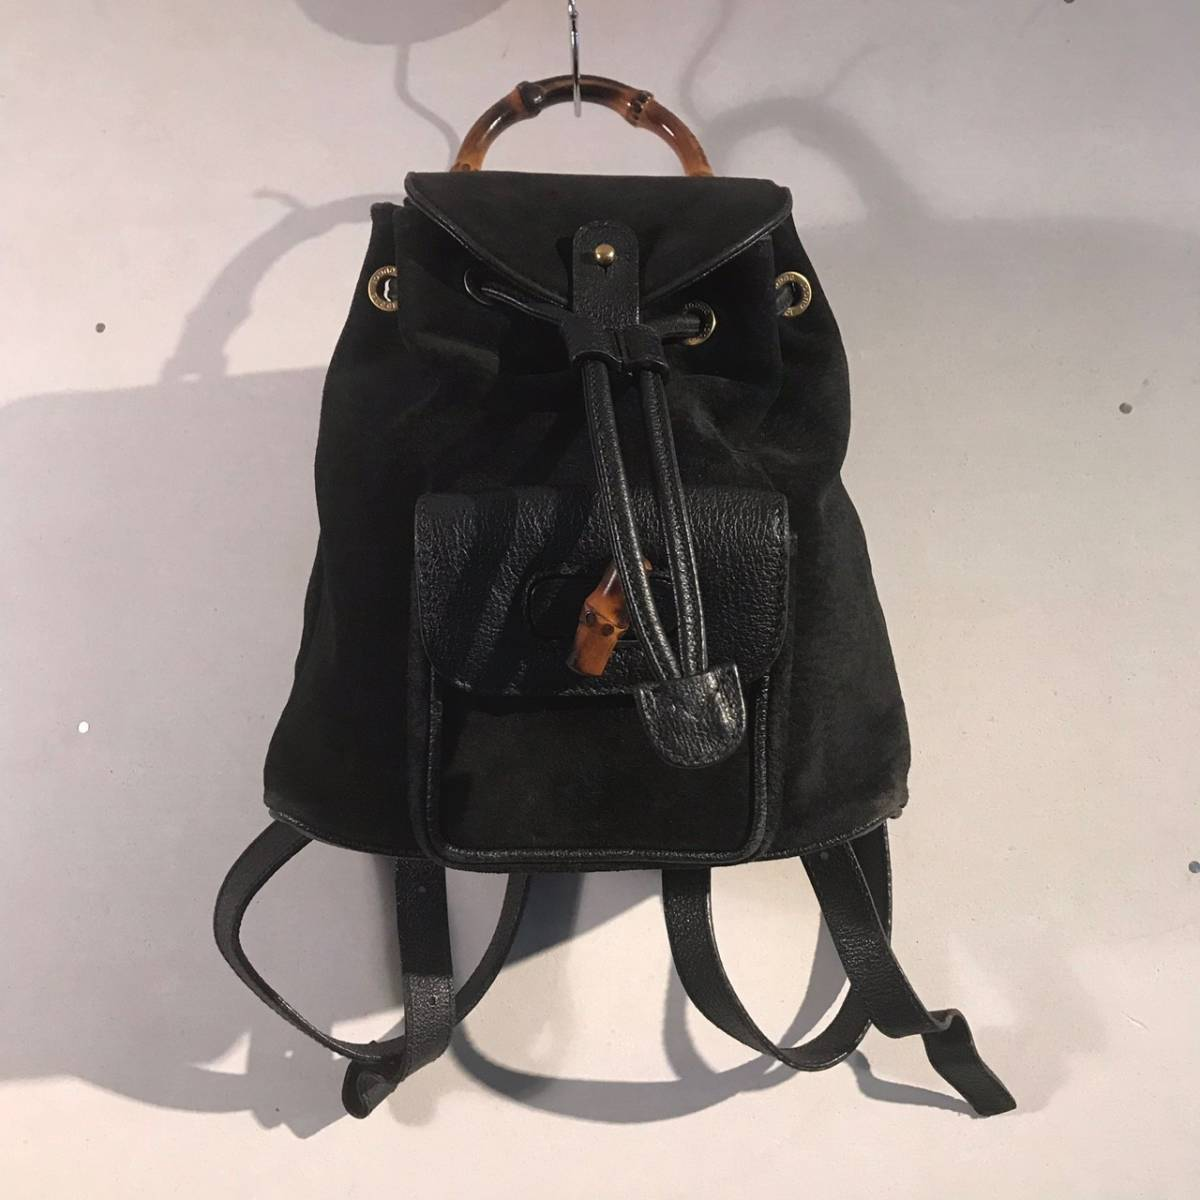 6e0418b34e1 Old Gucci OLD GUCCI Italy made bamboo rucksack Day Pack bag suede leather  black black